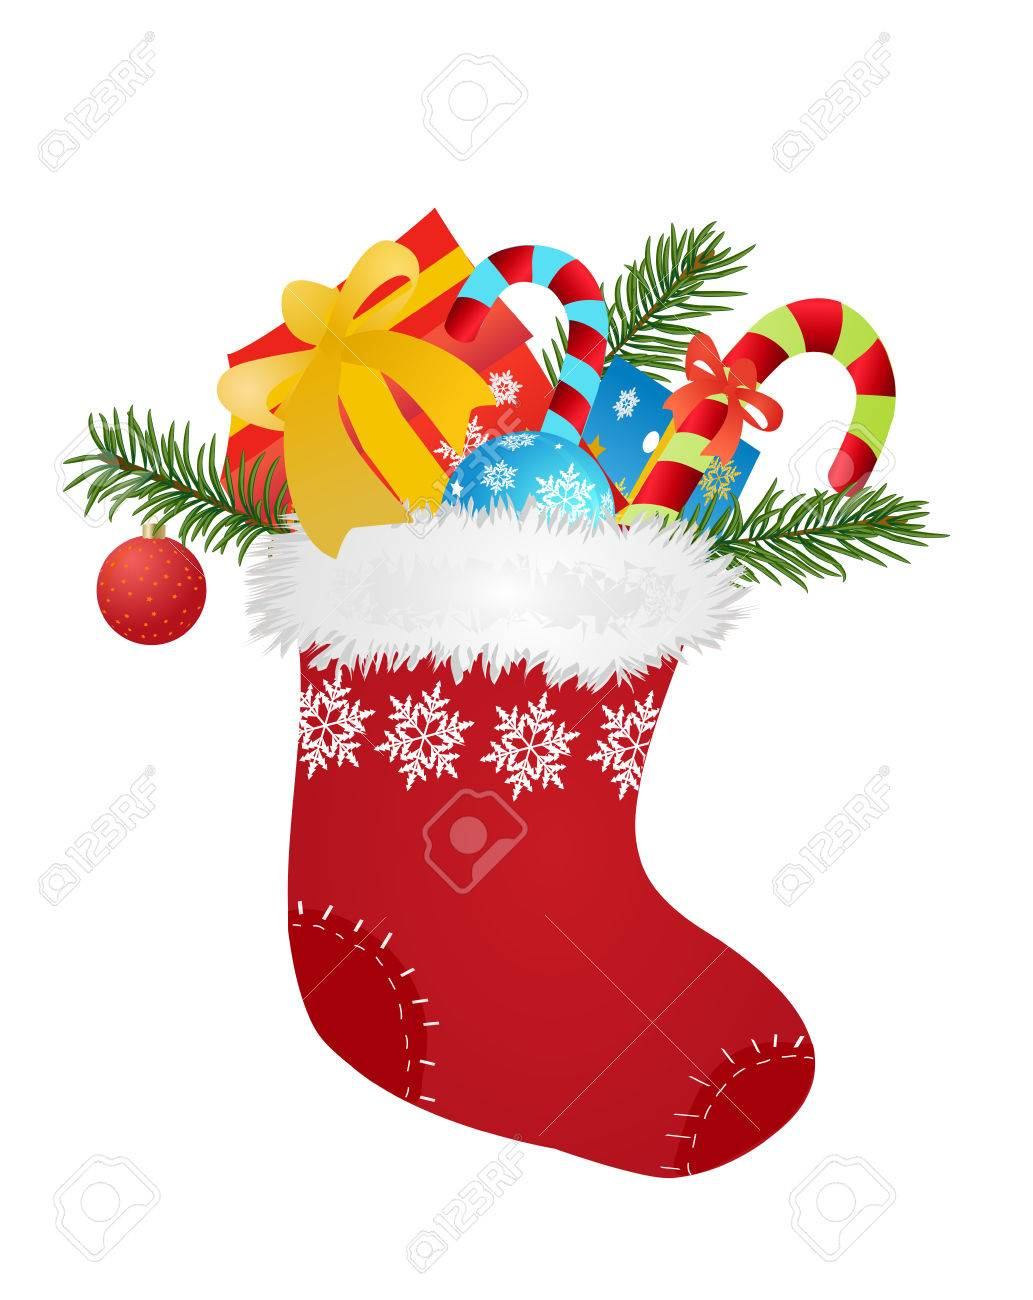 Christmas red sock with gifts and candies - vector illustration - 53326664